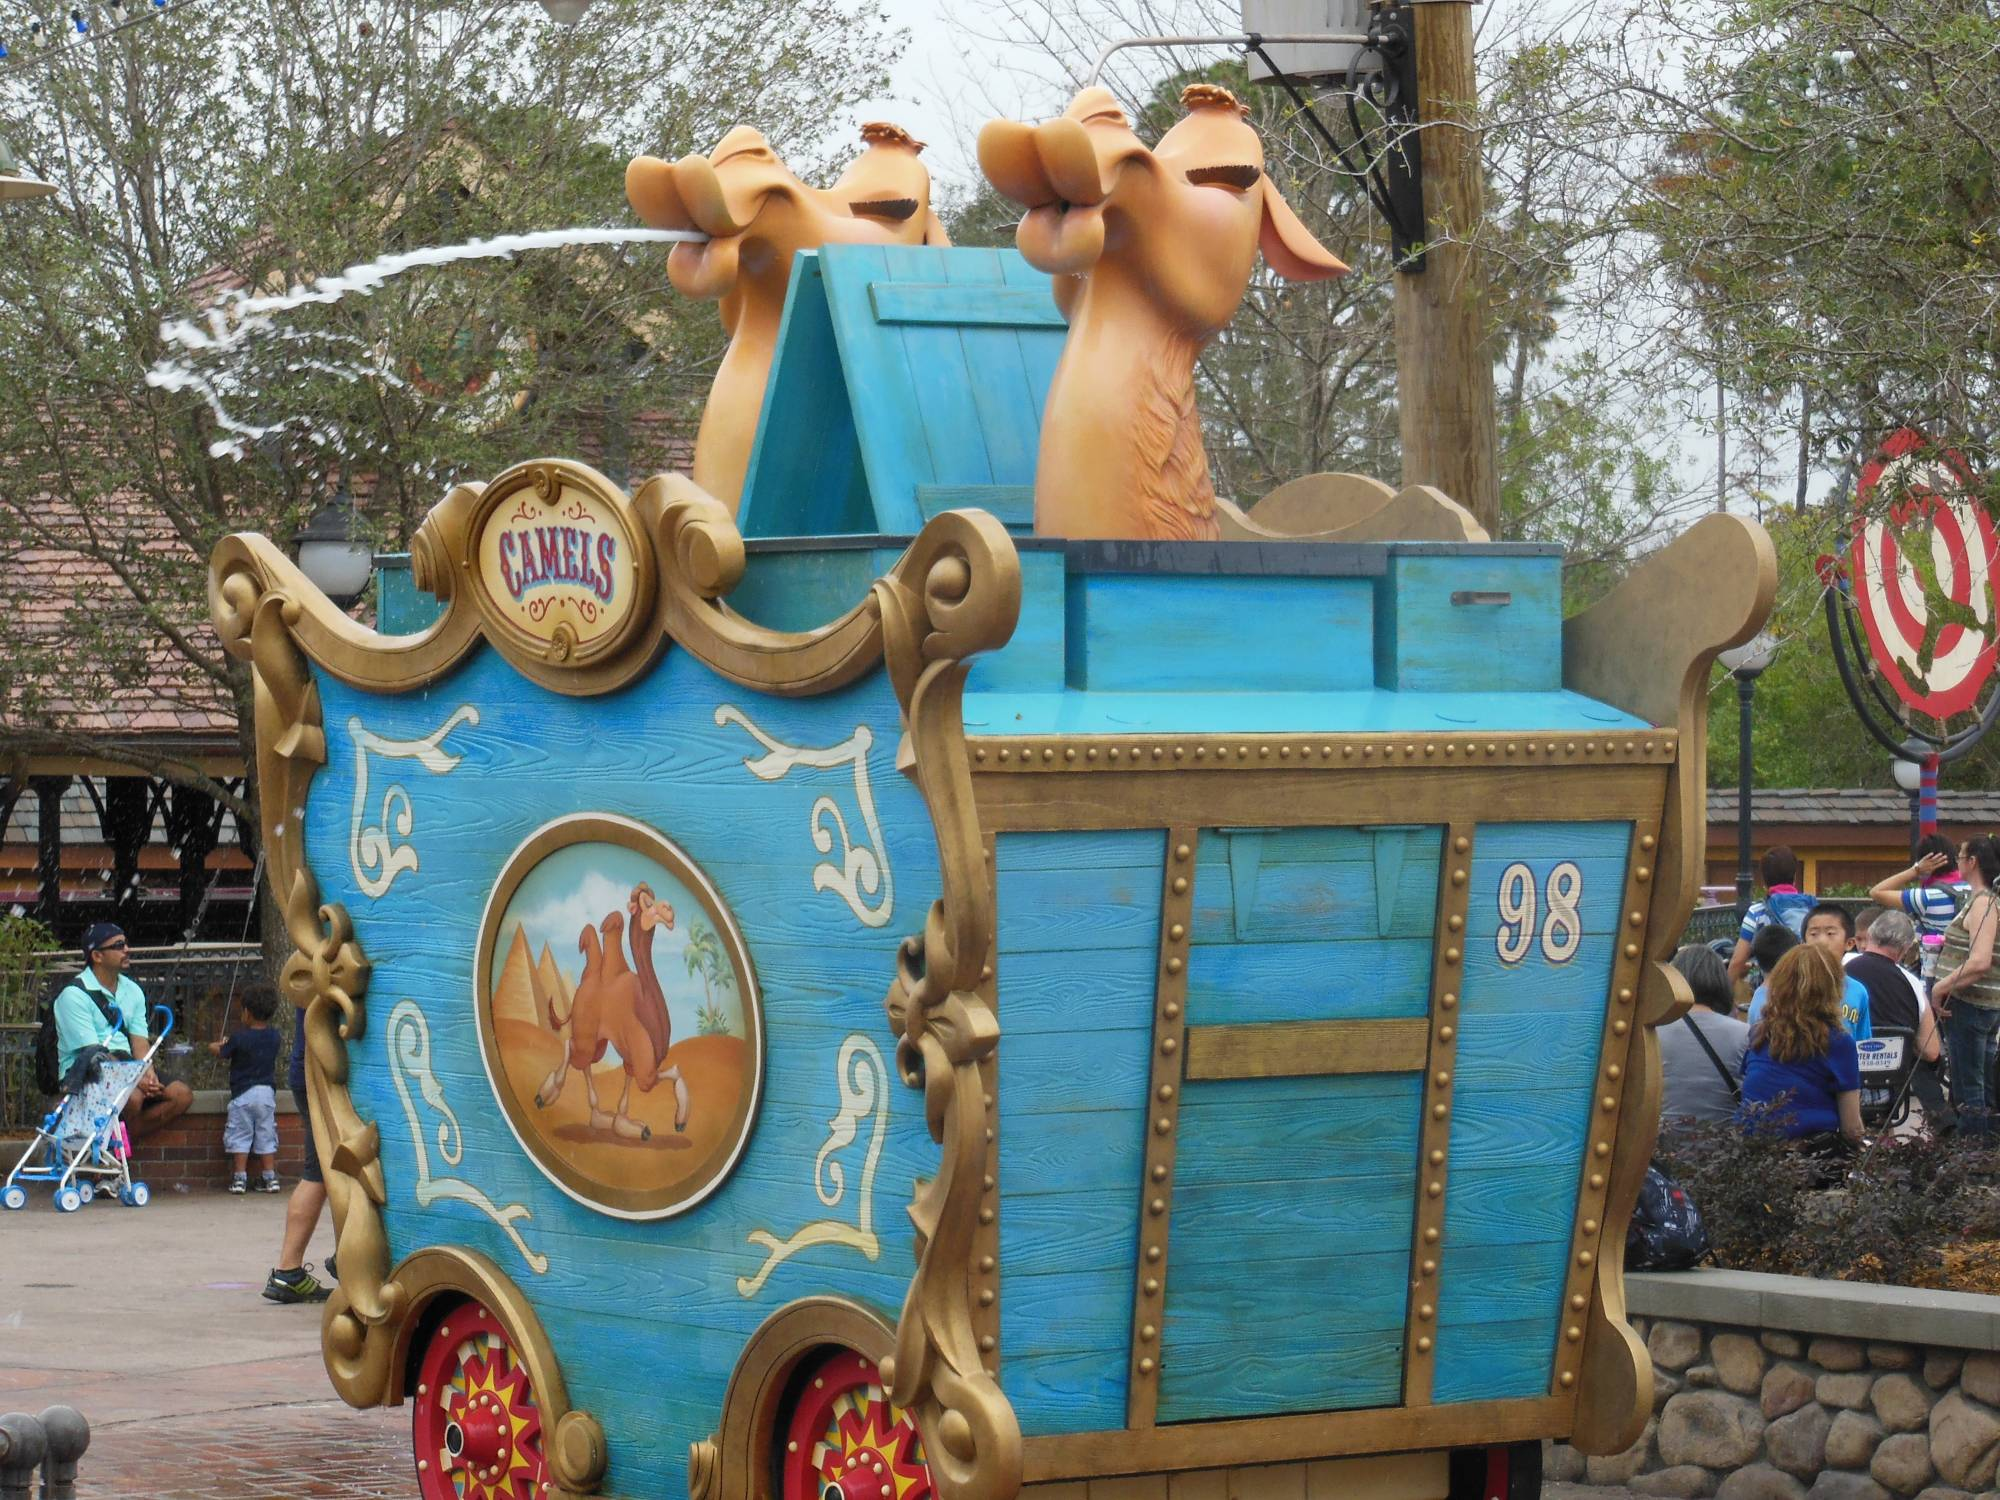 Explore all there is to offer in Fantasyland at the Magic Kingdom |PassPorter.com